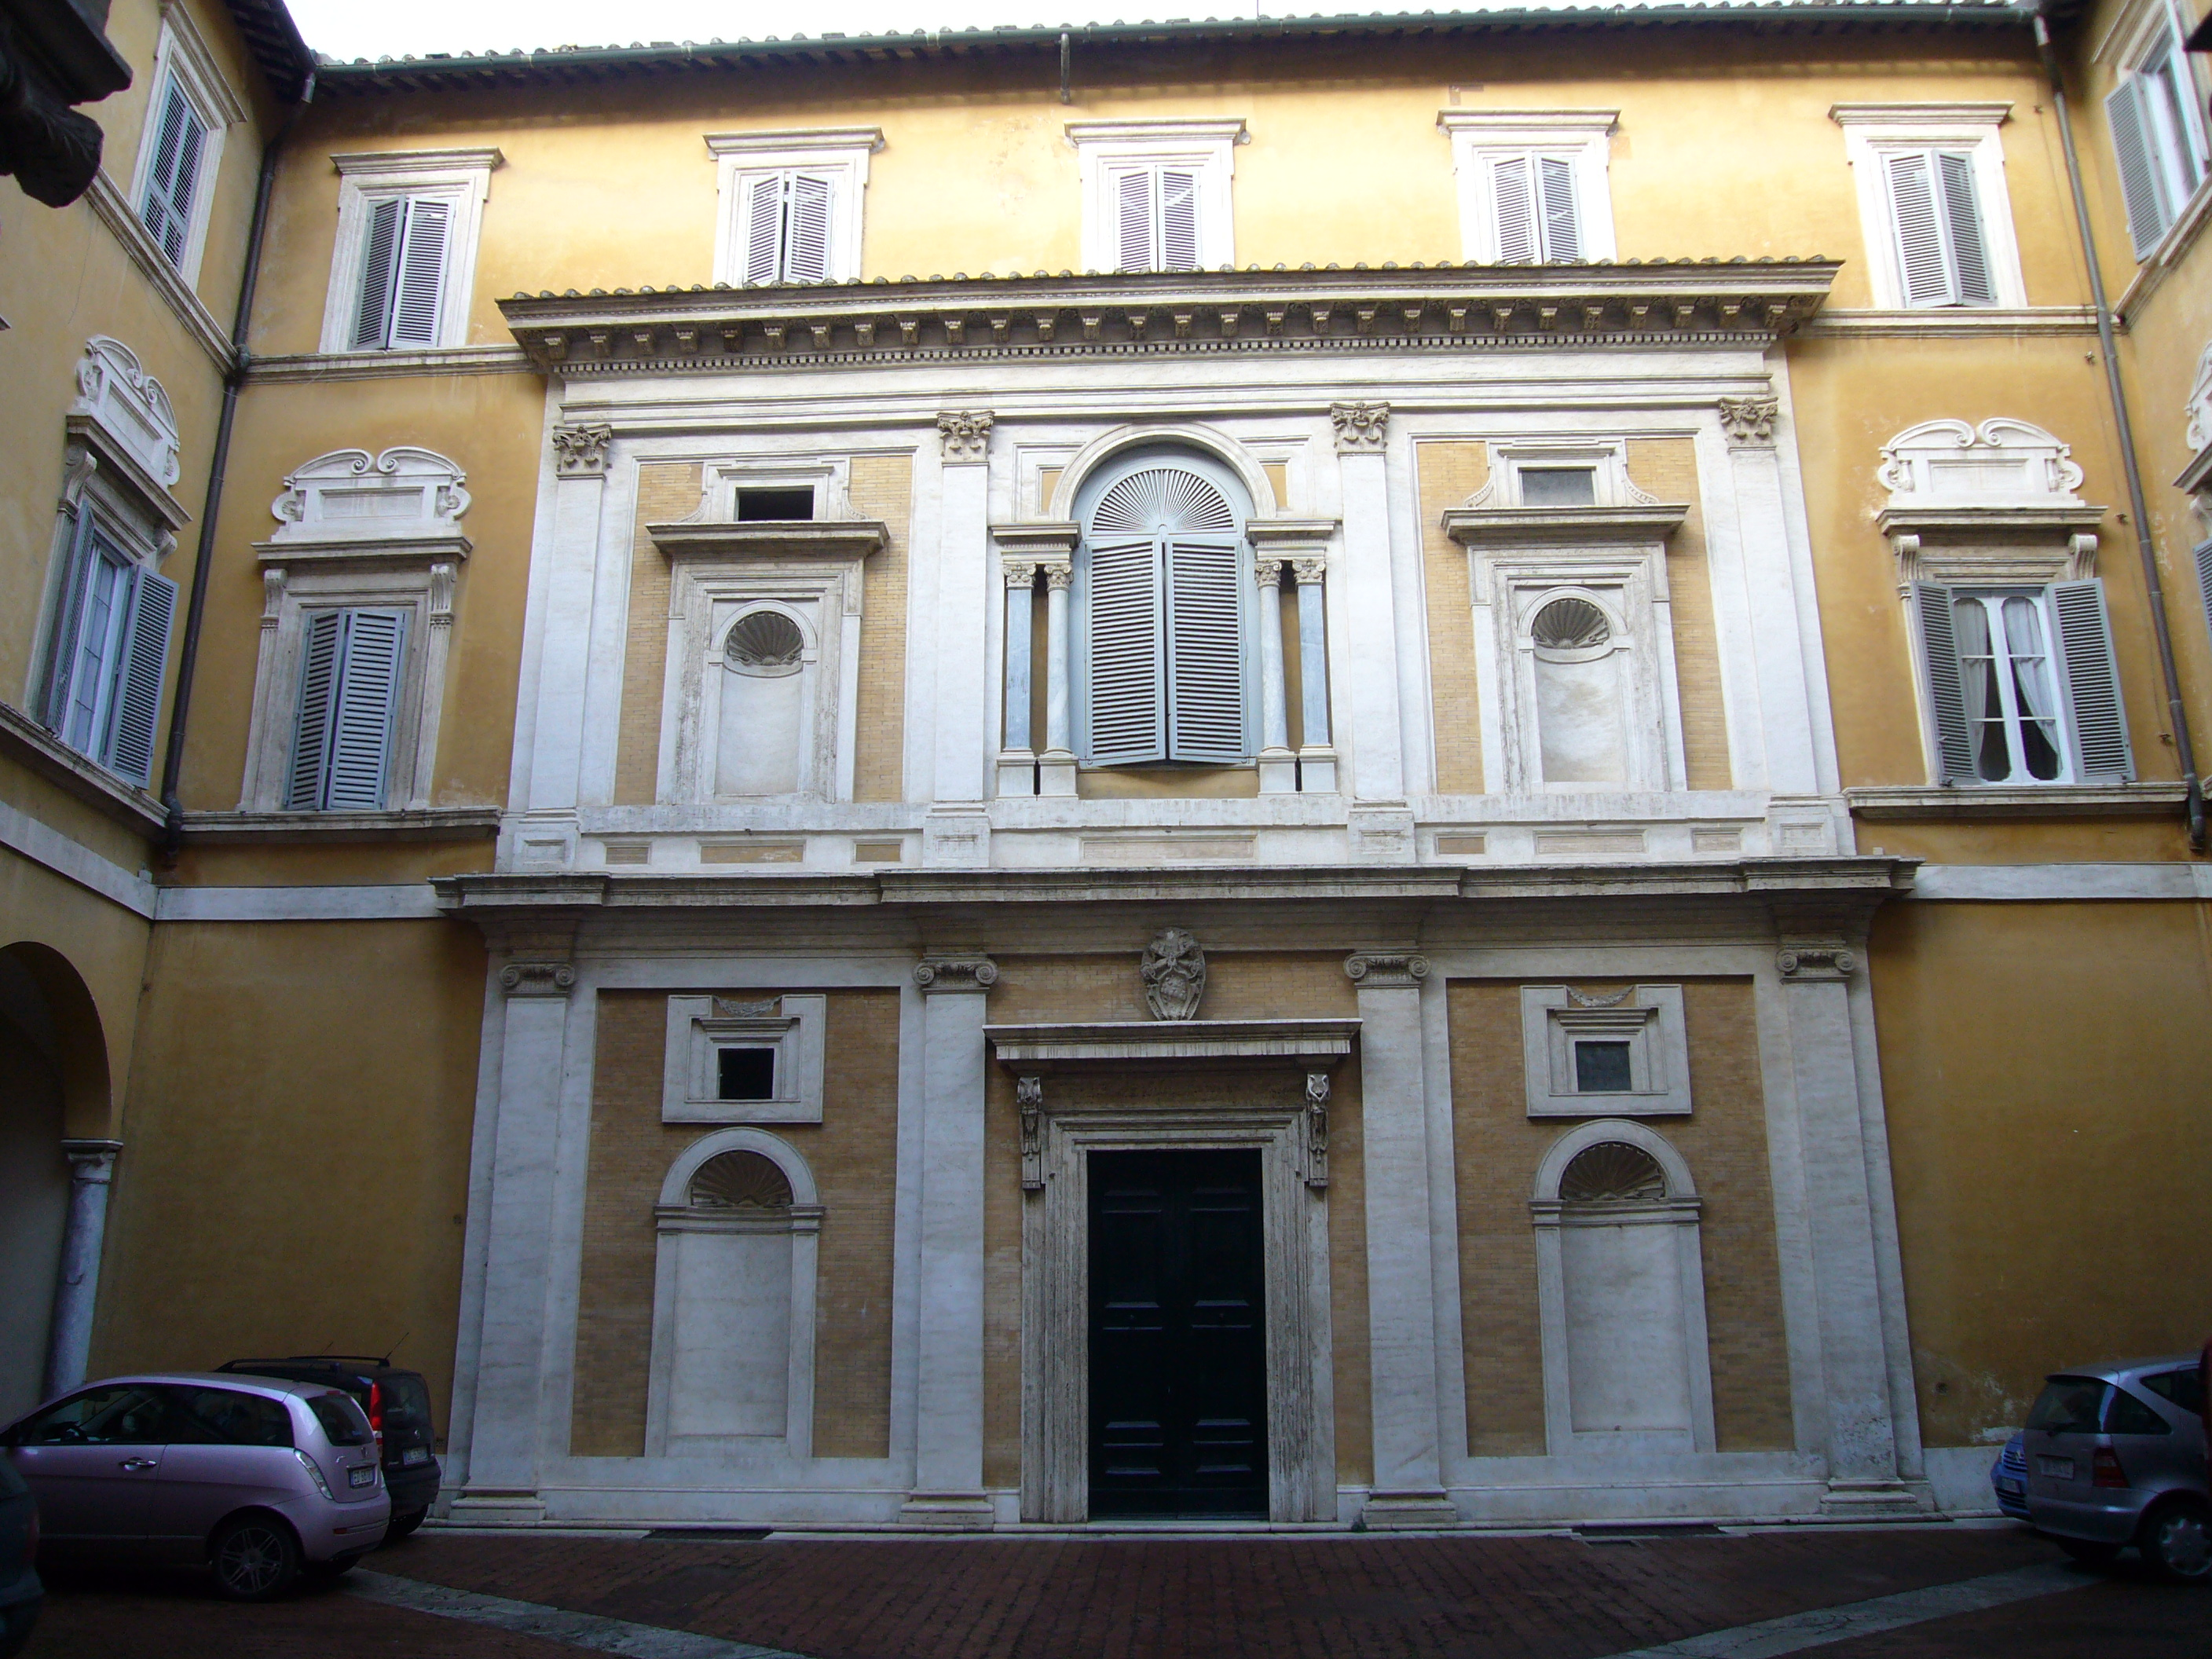 https://upload.wikimedia.org/wikipedia/commons/e/e3/Campo_Marzio_-_Palazzo_Firenze_cortile_1190751.JPG